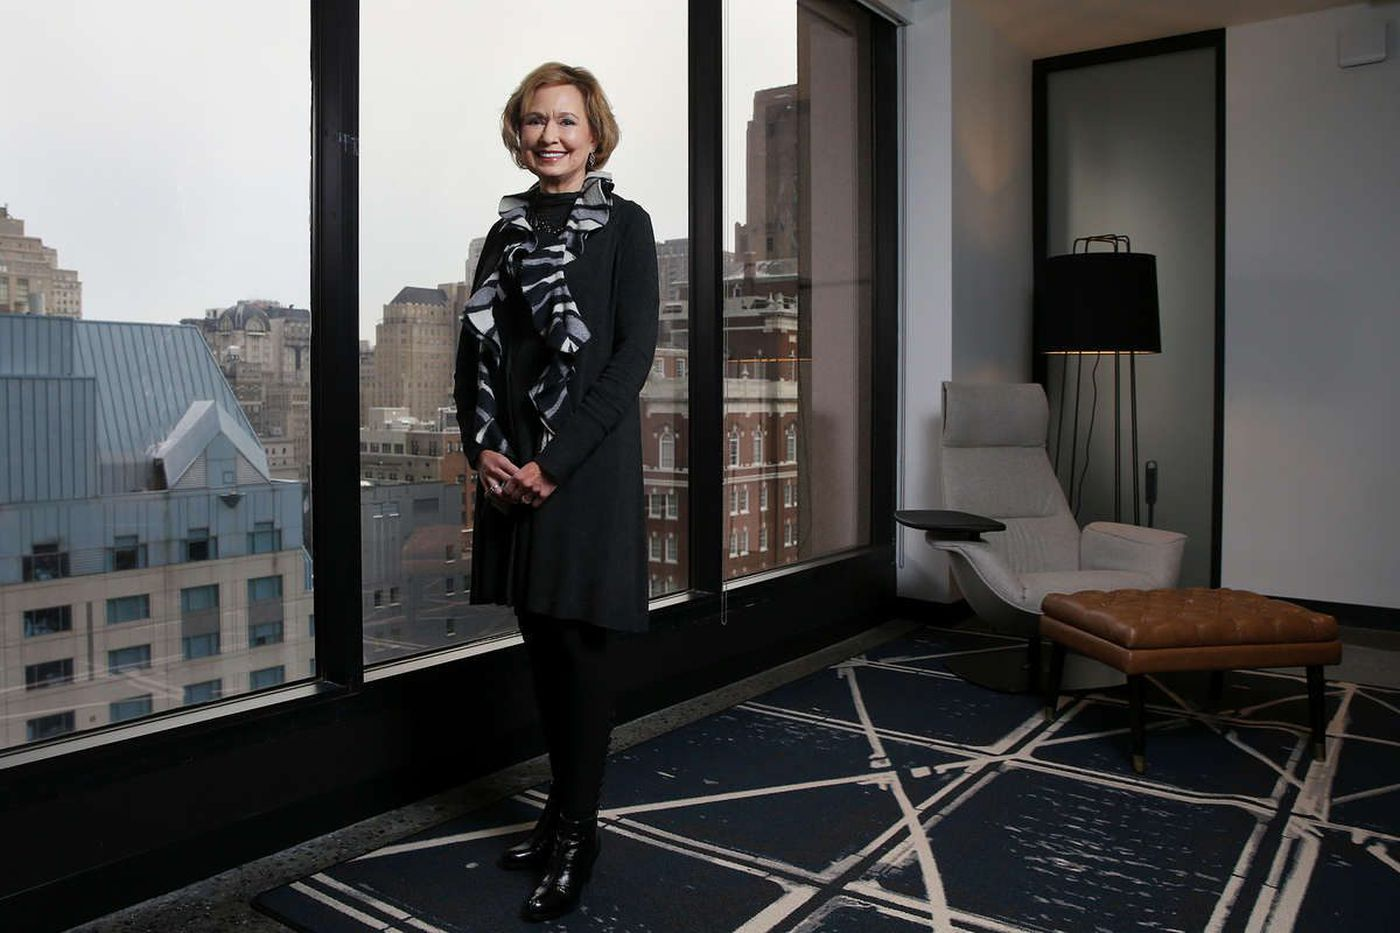 Meryl Levitz, head of Visit Philly, to step down after 21 years